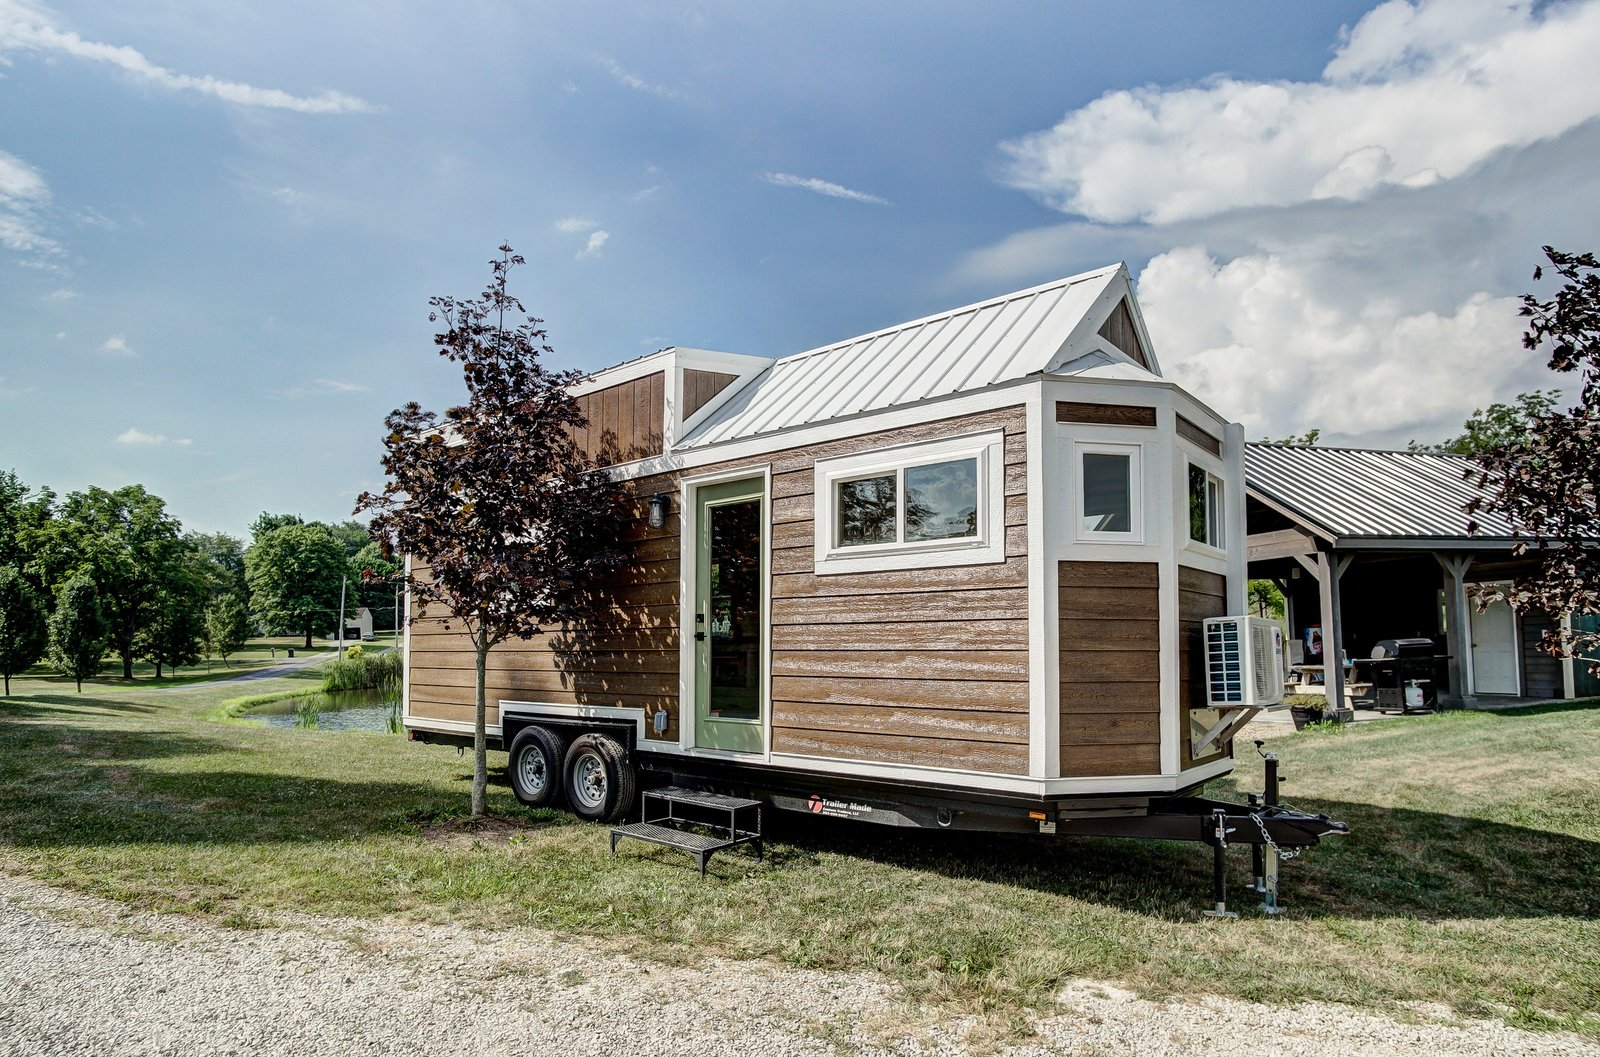 Exterior, Flat RoofLine, Tiny Home Building Type, Wood Siding Material, and Gable RoofLine  Photo 1 of 11 in This 270-Square-Foot Tiny Home Is Now Up For Grabs at $89K